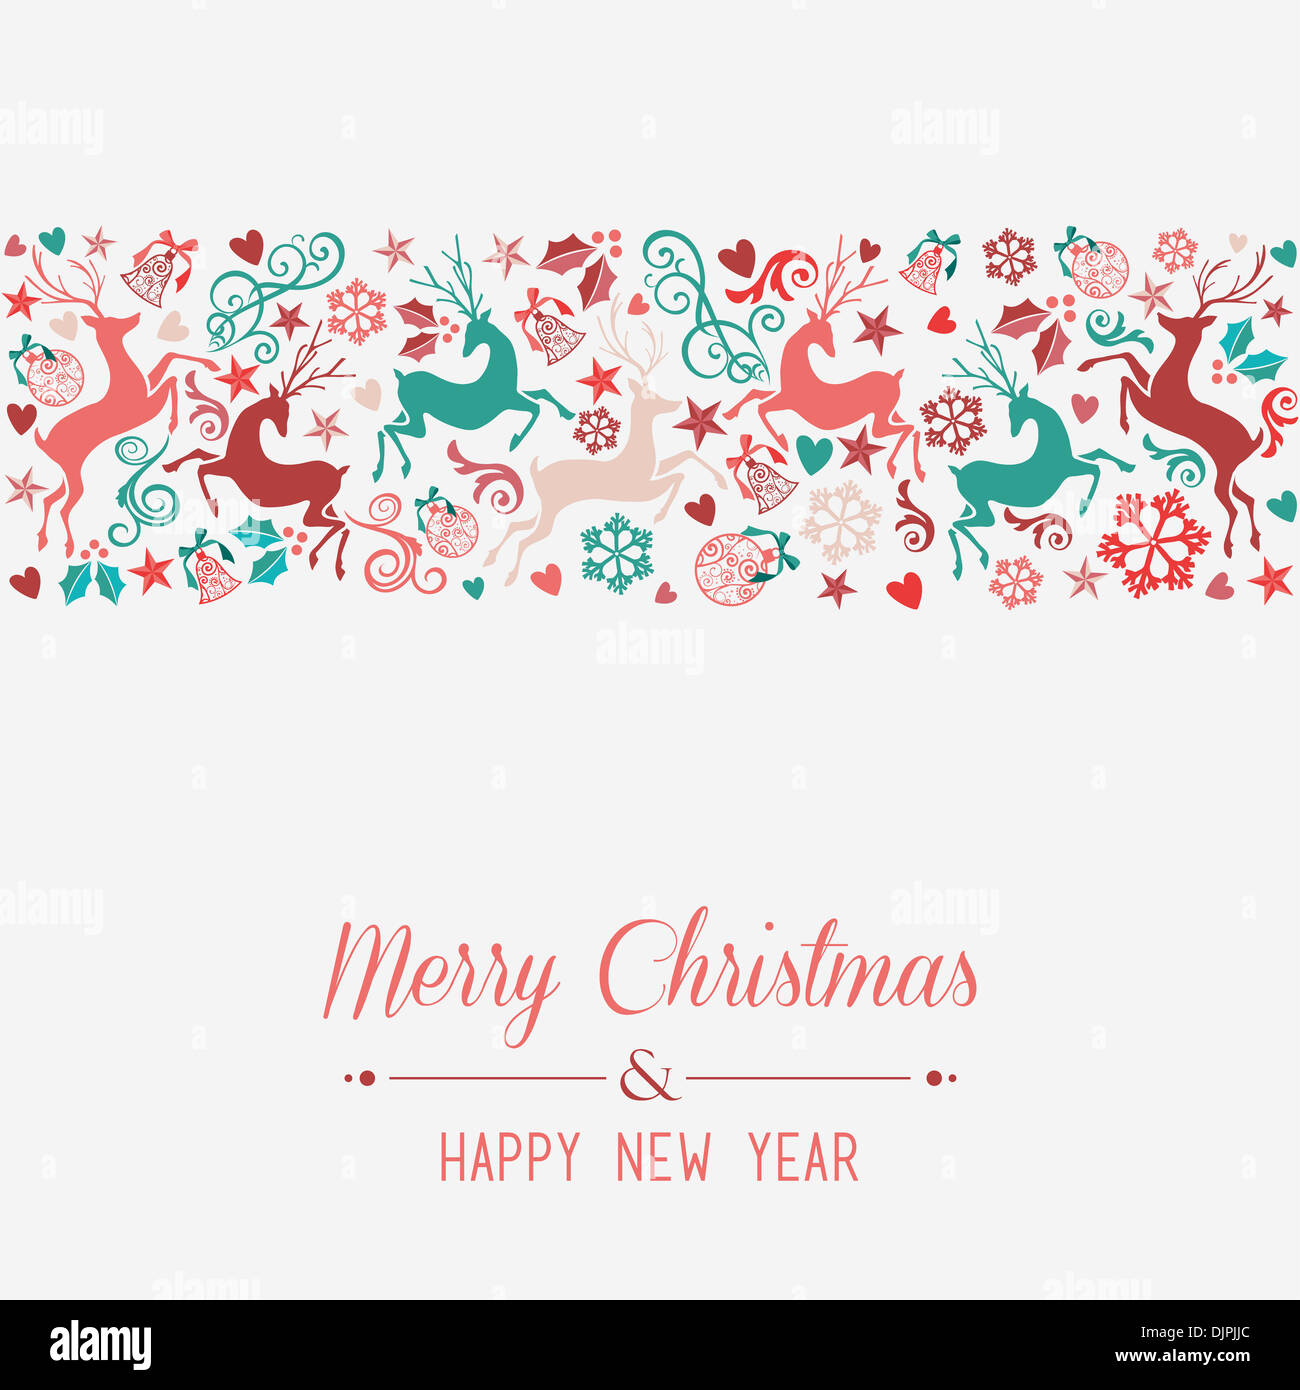 Merry Christmas and Happy New Year banner greeting card ...  Merry Christmas...